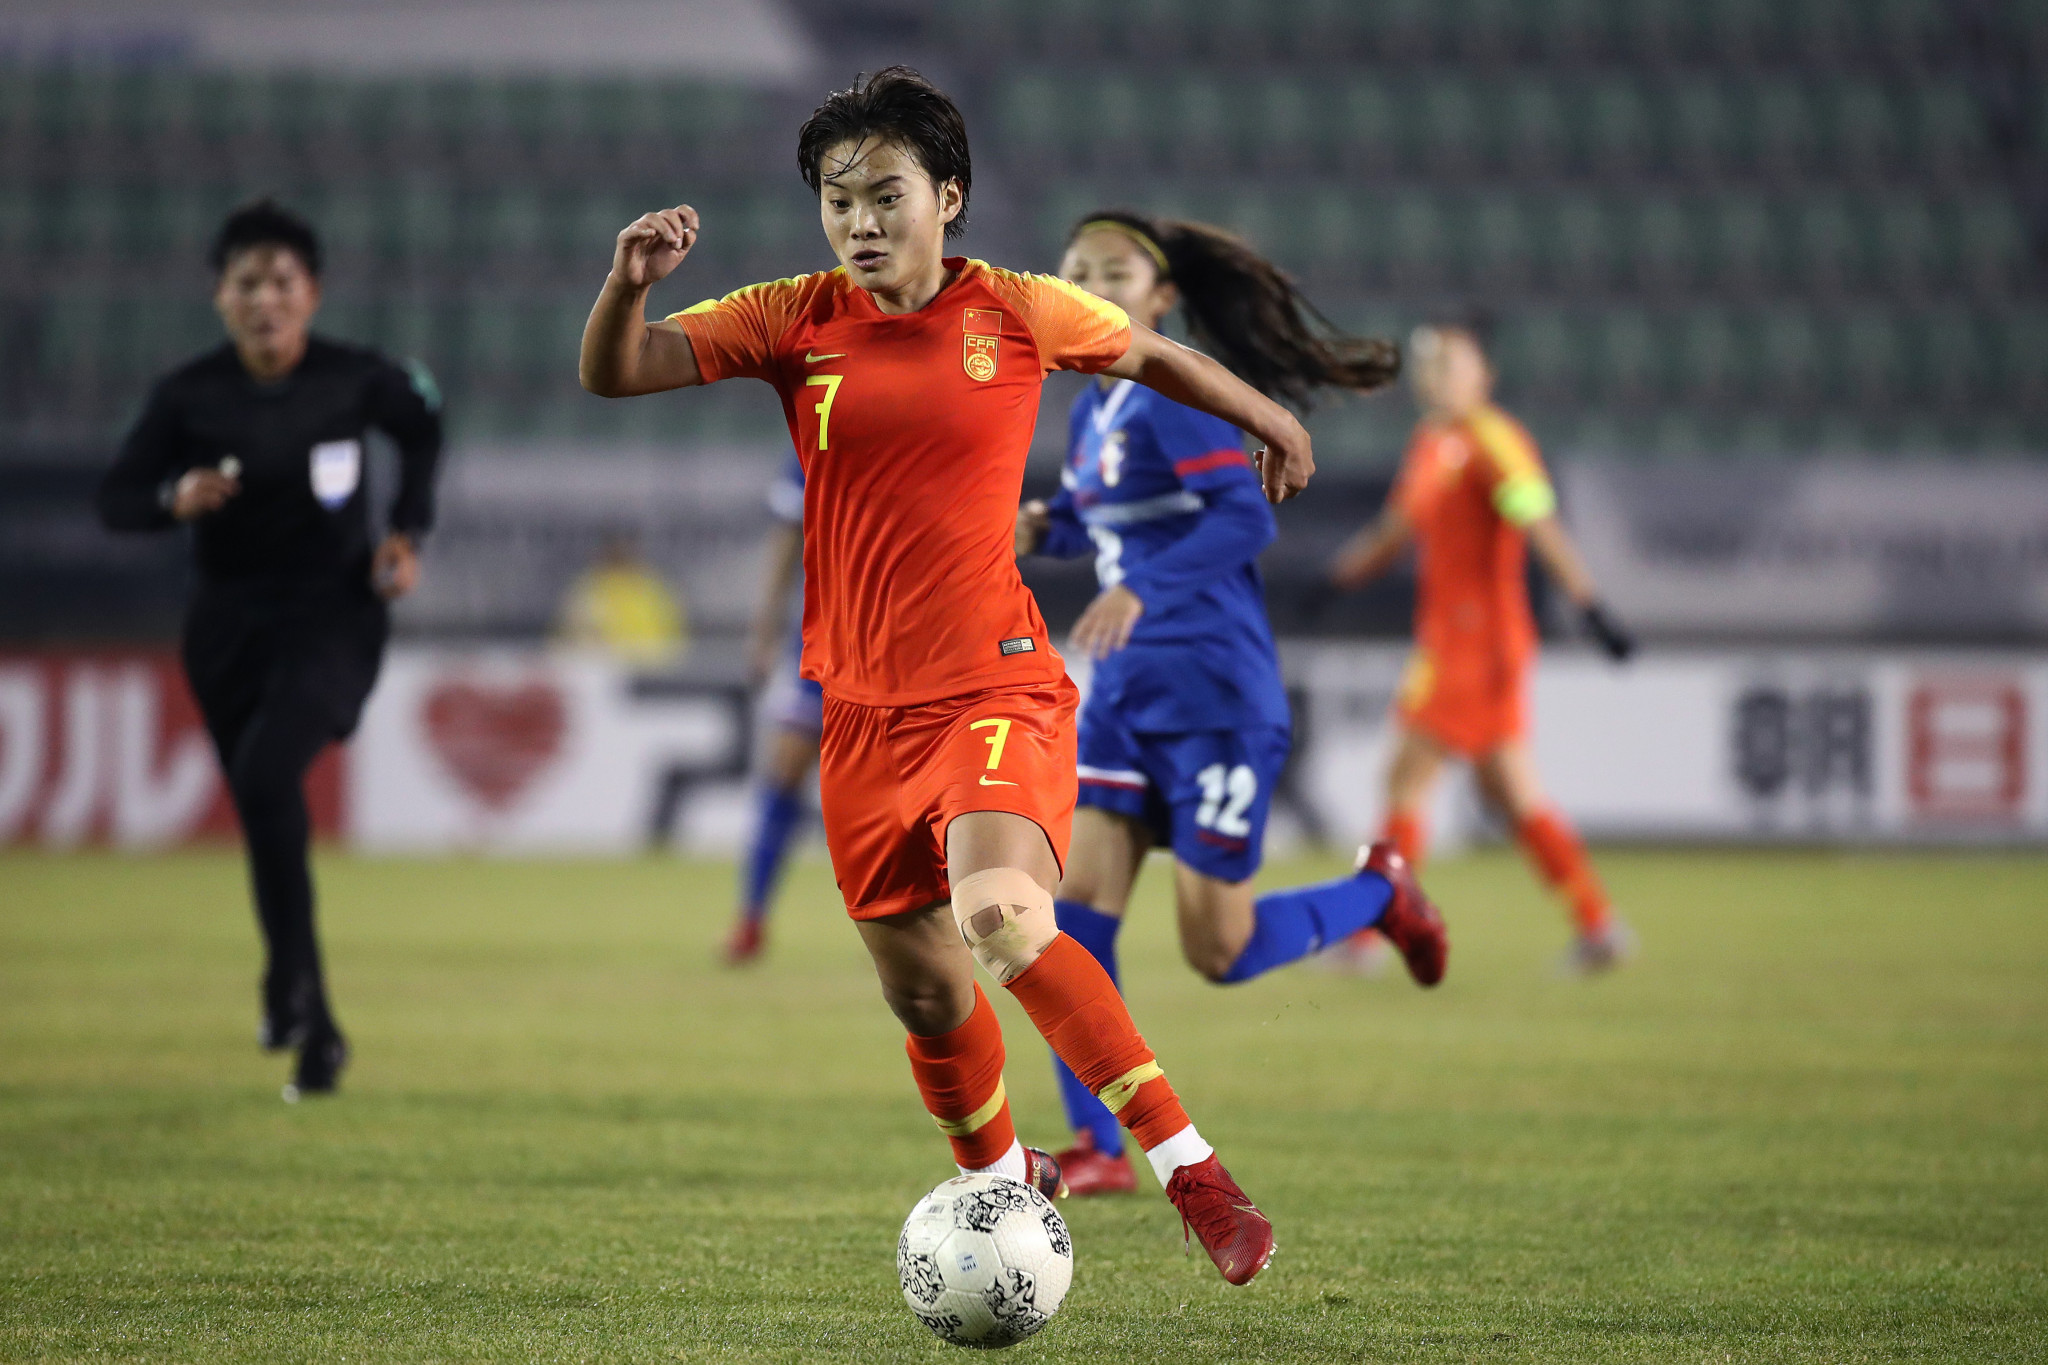 China's experienced midfielder Wang Shuang was not able to travel to Australia for the Olympic qualifying with the squad, being forced to remain in isolation in Wuhan, the centre of the coronavirus outbreak ©Getty Images